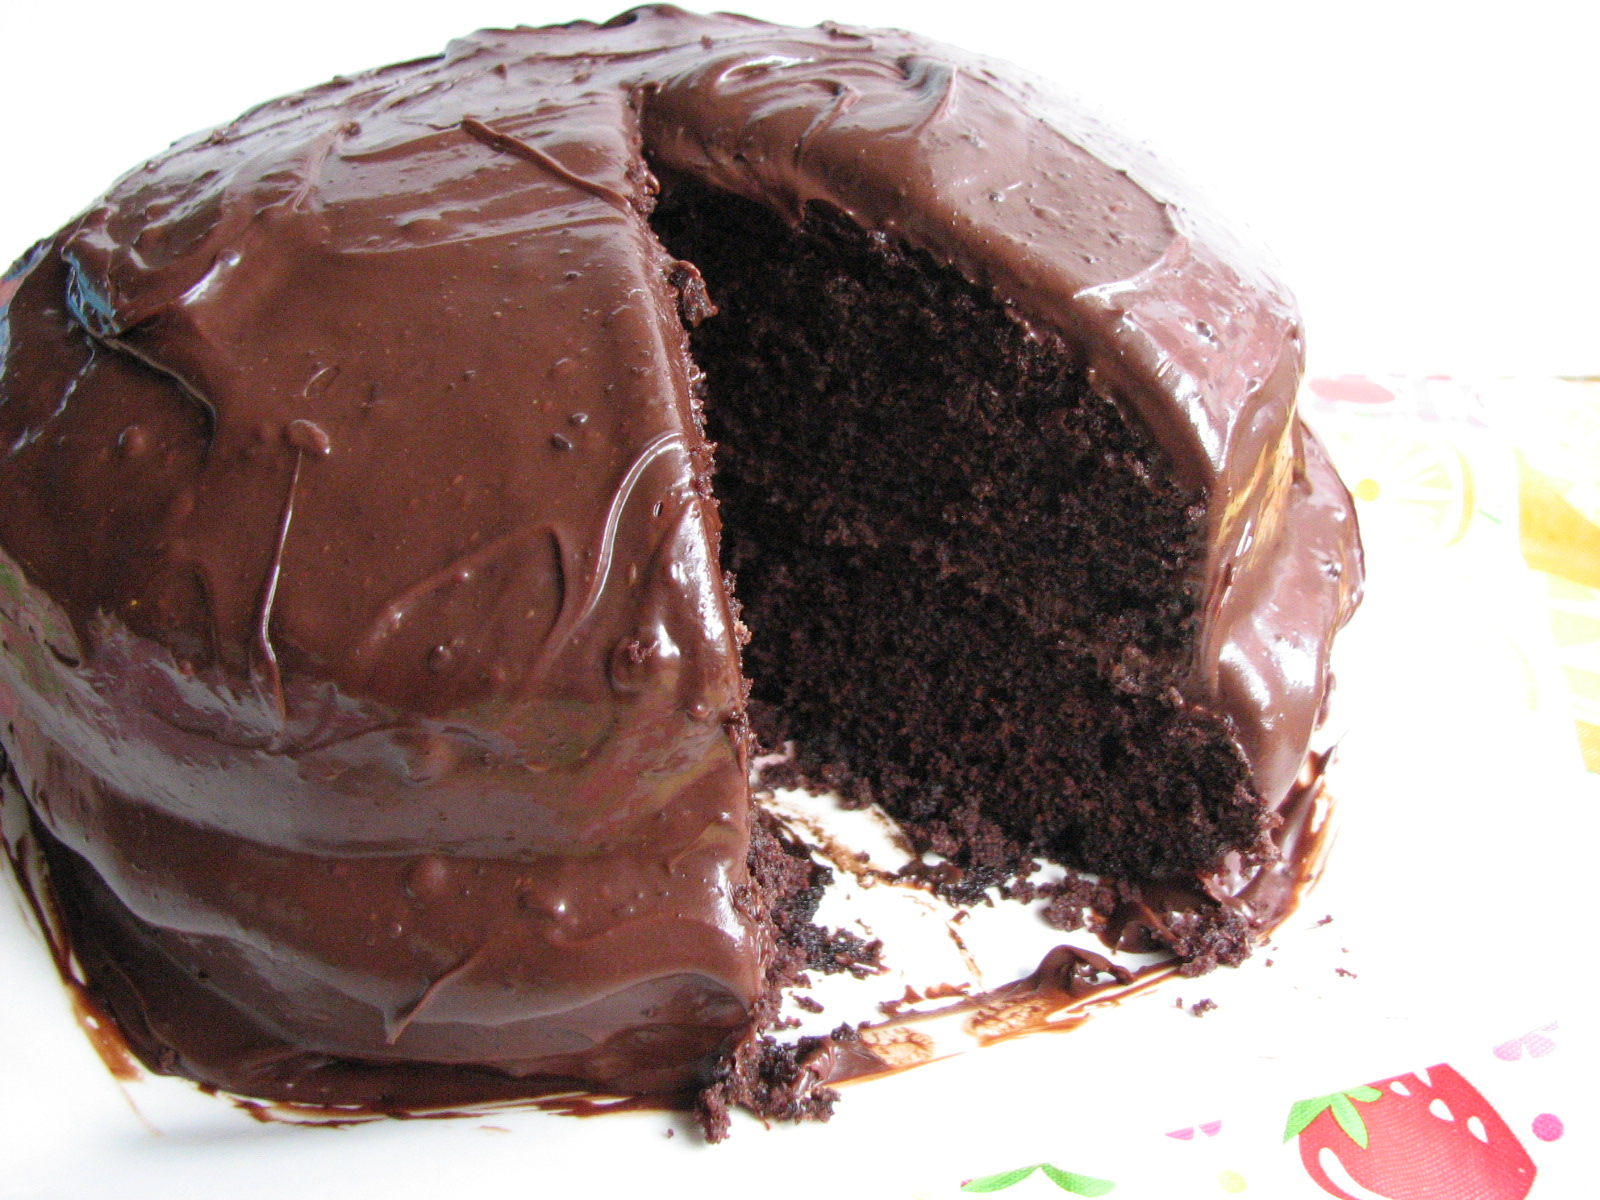 Heidi Bakes Old Fashioned Chocolate Cake with Glossy Chocolate Icing